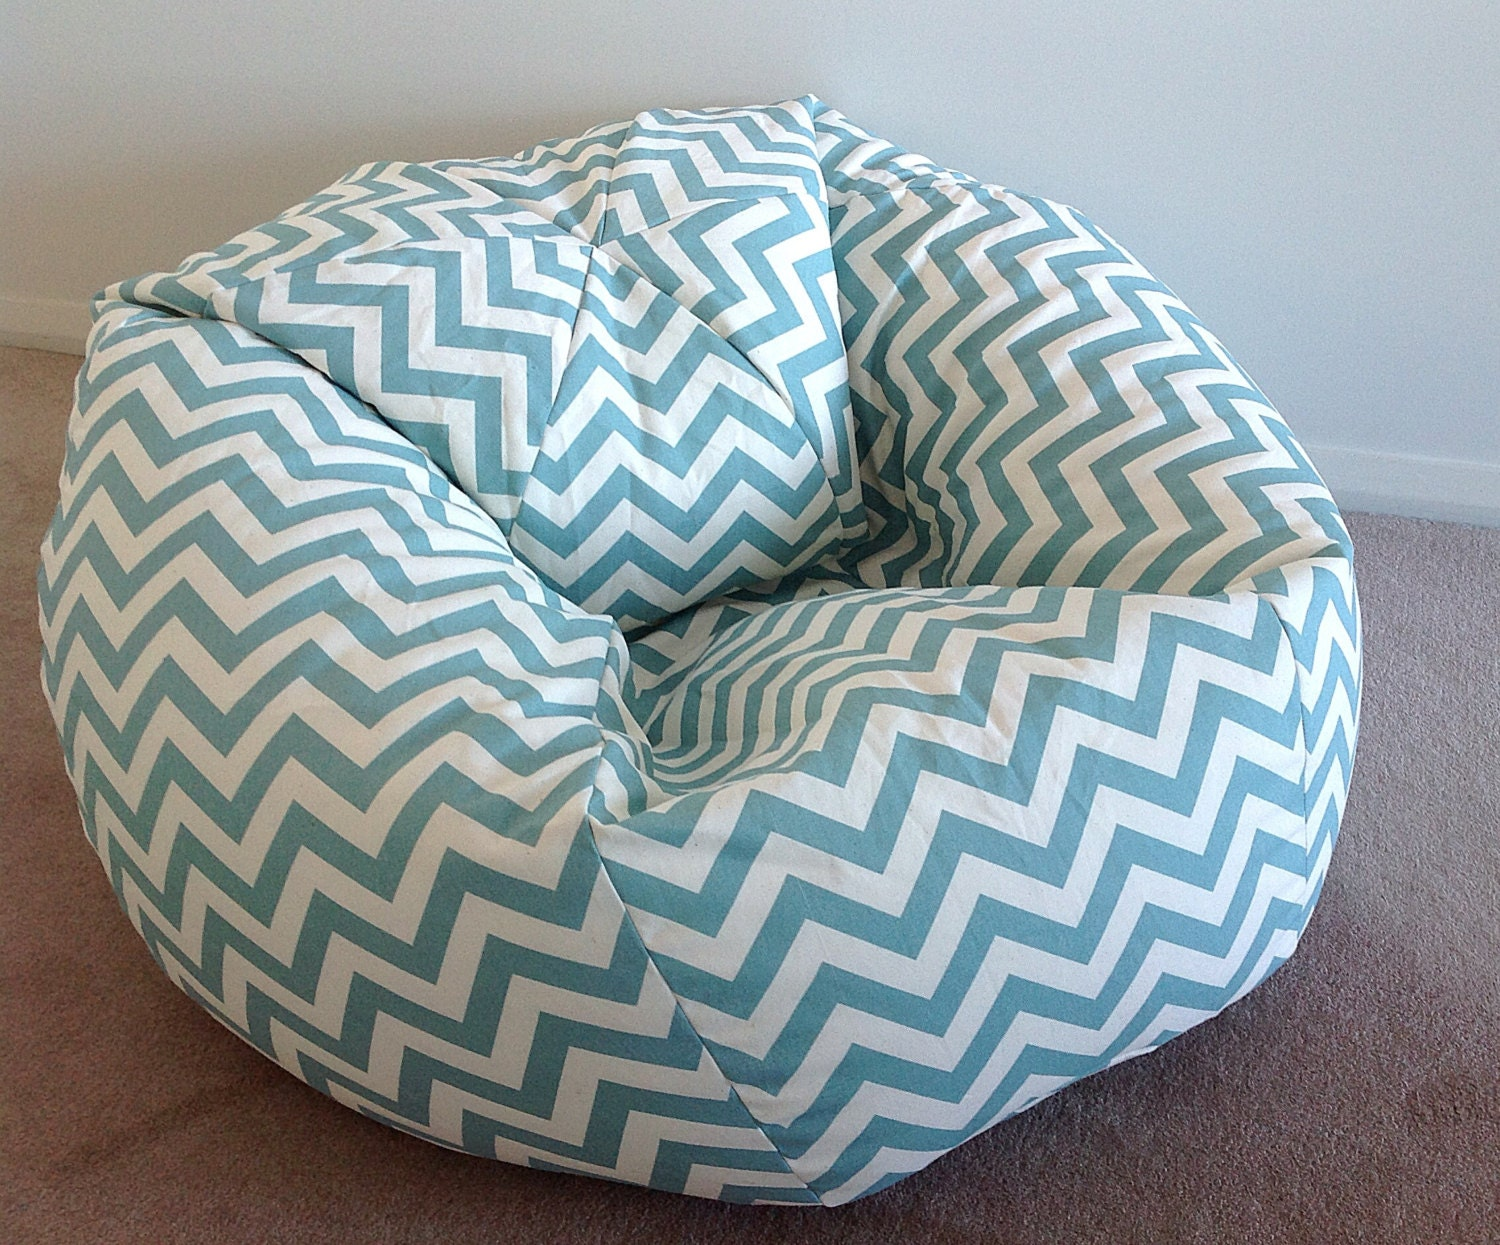 284923113895756454 in addition Microsuede Papasan Cushion Floor Pillow Pet Bed 48 Inch Teal Aqua Blue  pare To Bean Bag Chairs Gaming Chairs as well My Room Is Where Its At as well 322127785148 likewise Duck Egg Blue Bean Bag Zig Zag Chevron. on teal fluffy bean bag chairs